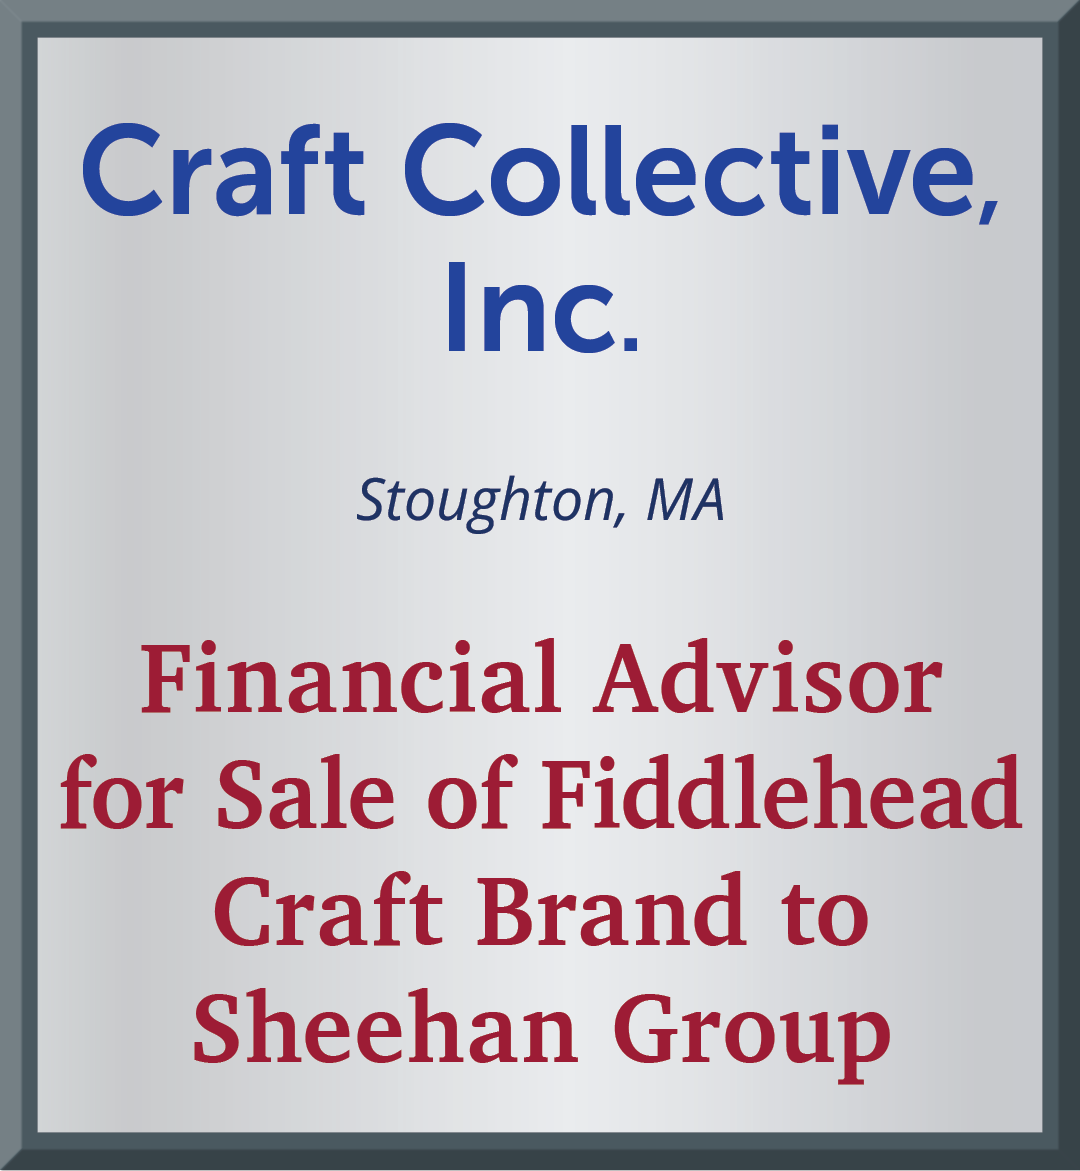 Craft-Collective-Inc